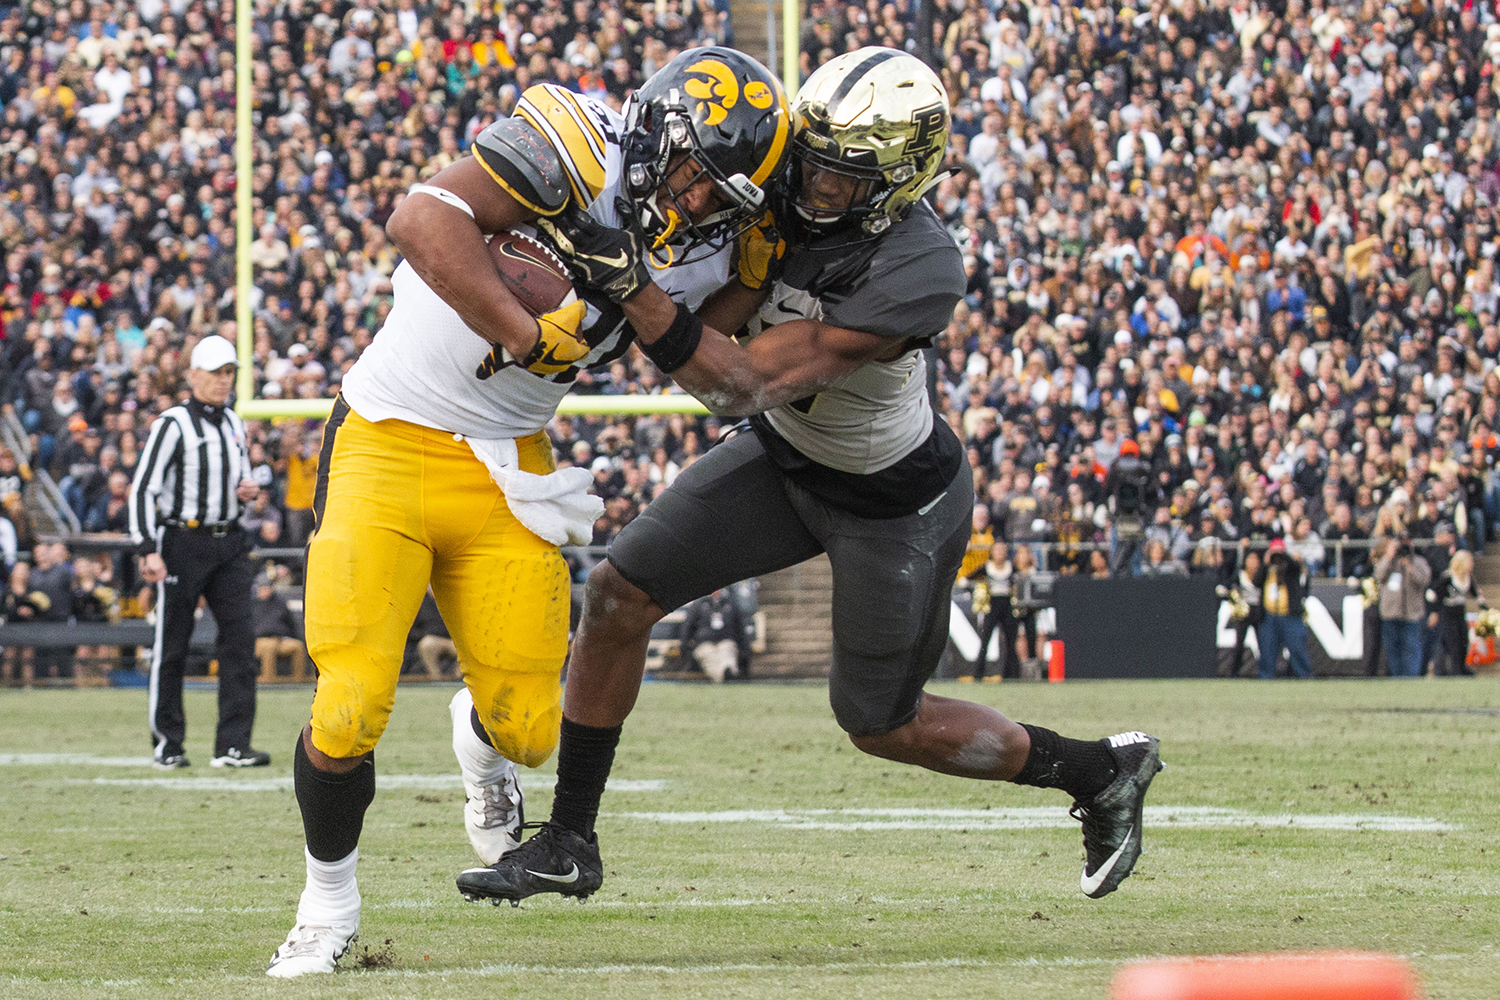 Iowa+running+back+Ivory+Kelly-Martin+during+the+Iowa%2FPurdue+game+at+Ross-Ade+Stadium+in+West+Lafayette%2C+Ind.+on+Saturday%2C+November+3%2C+2018.+The+Boilermakers+defeated+the+Hawkeyes+38-36.+